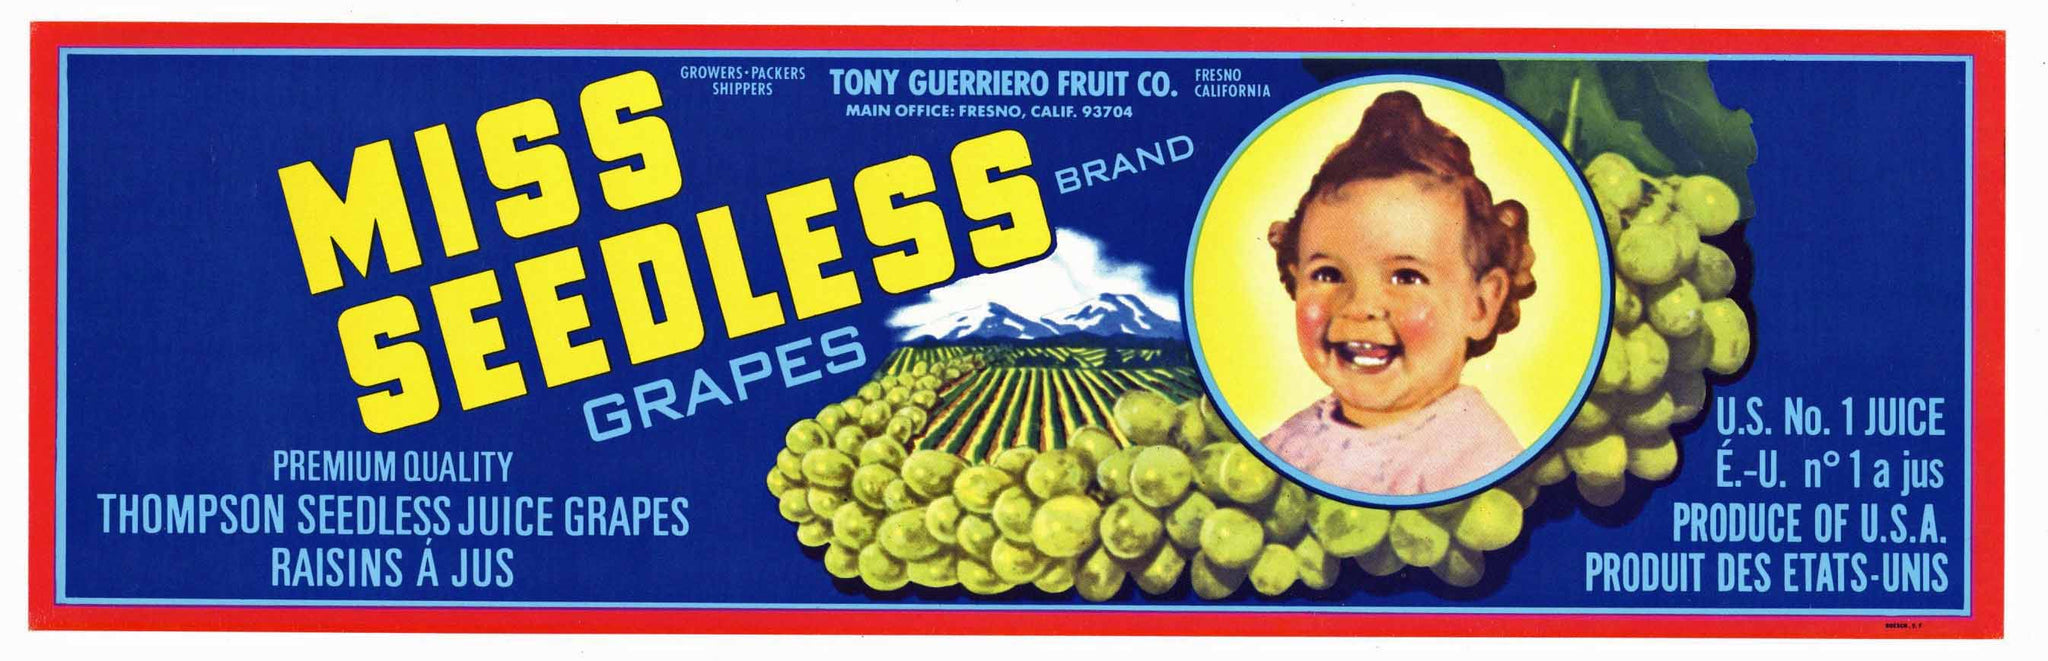 Miss Seedless Brand Vintage Fresno Grape Crate Label